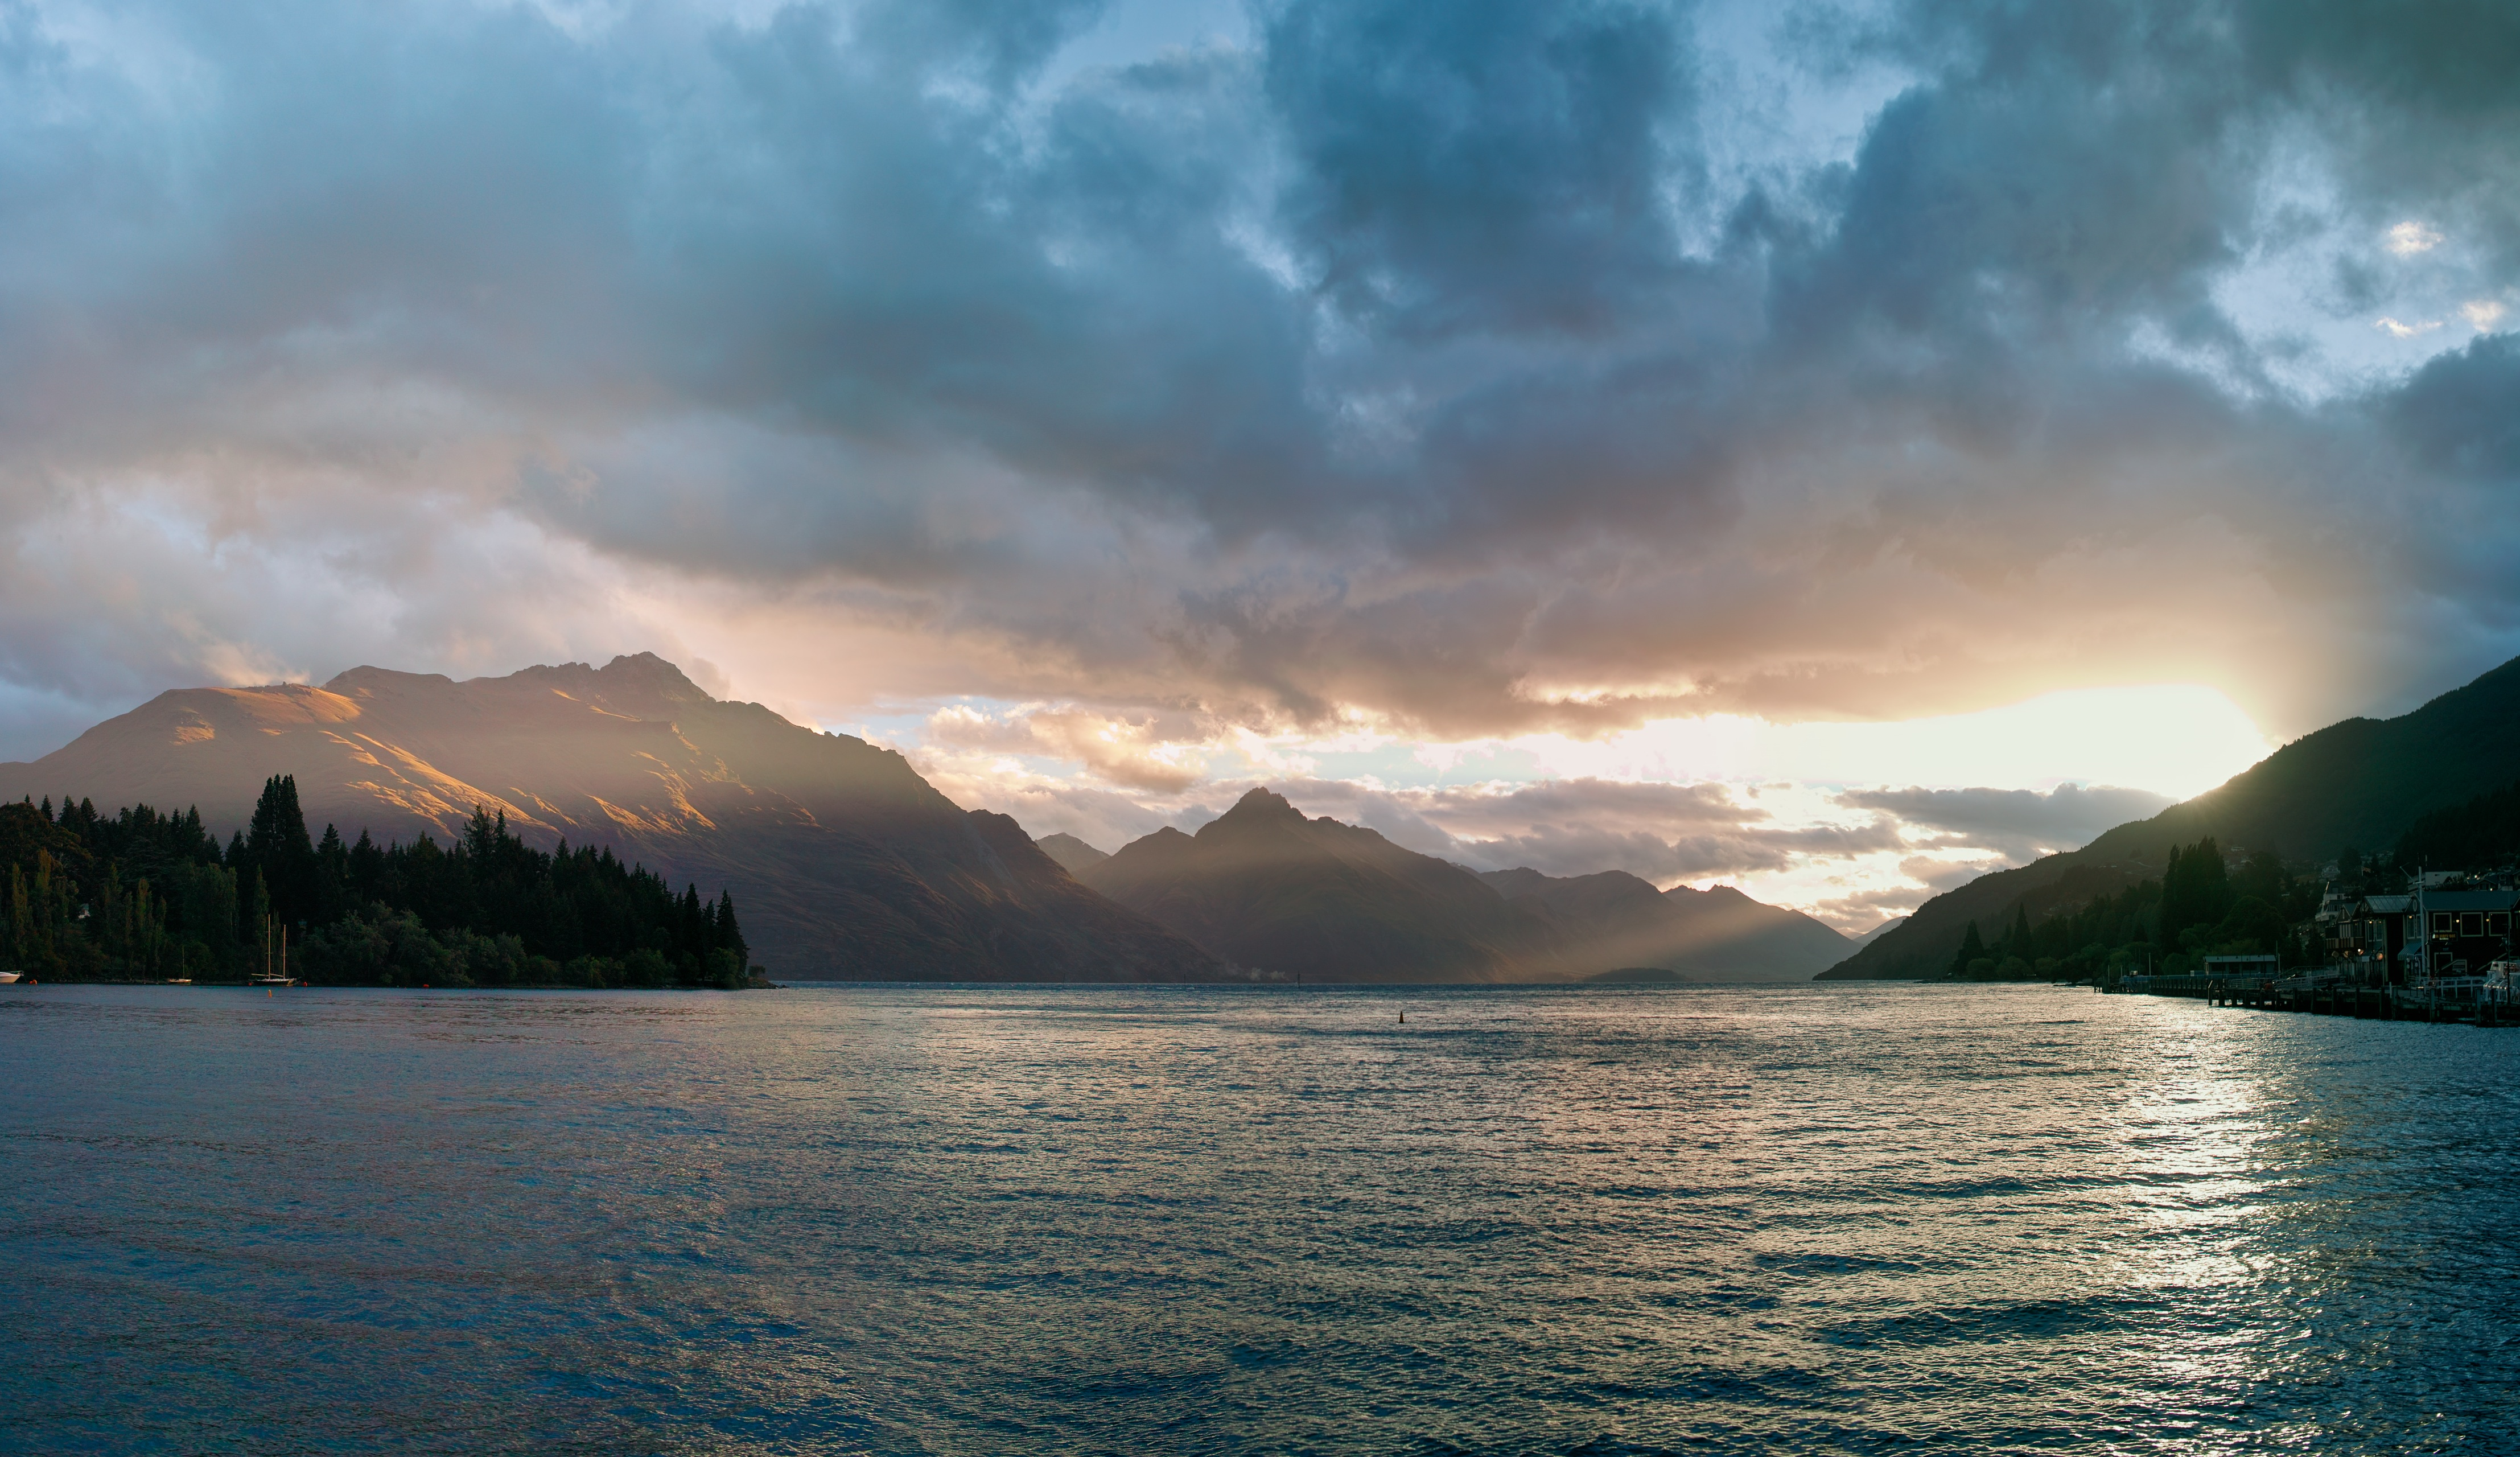 Sunset over Lake Wakatipu from the Queenstown waterfront